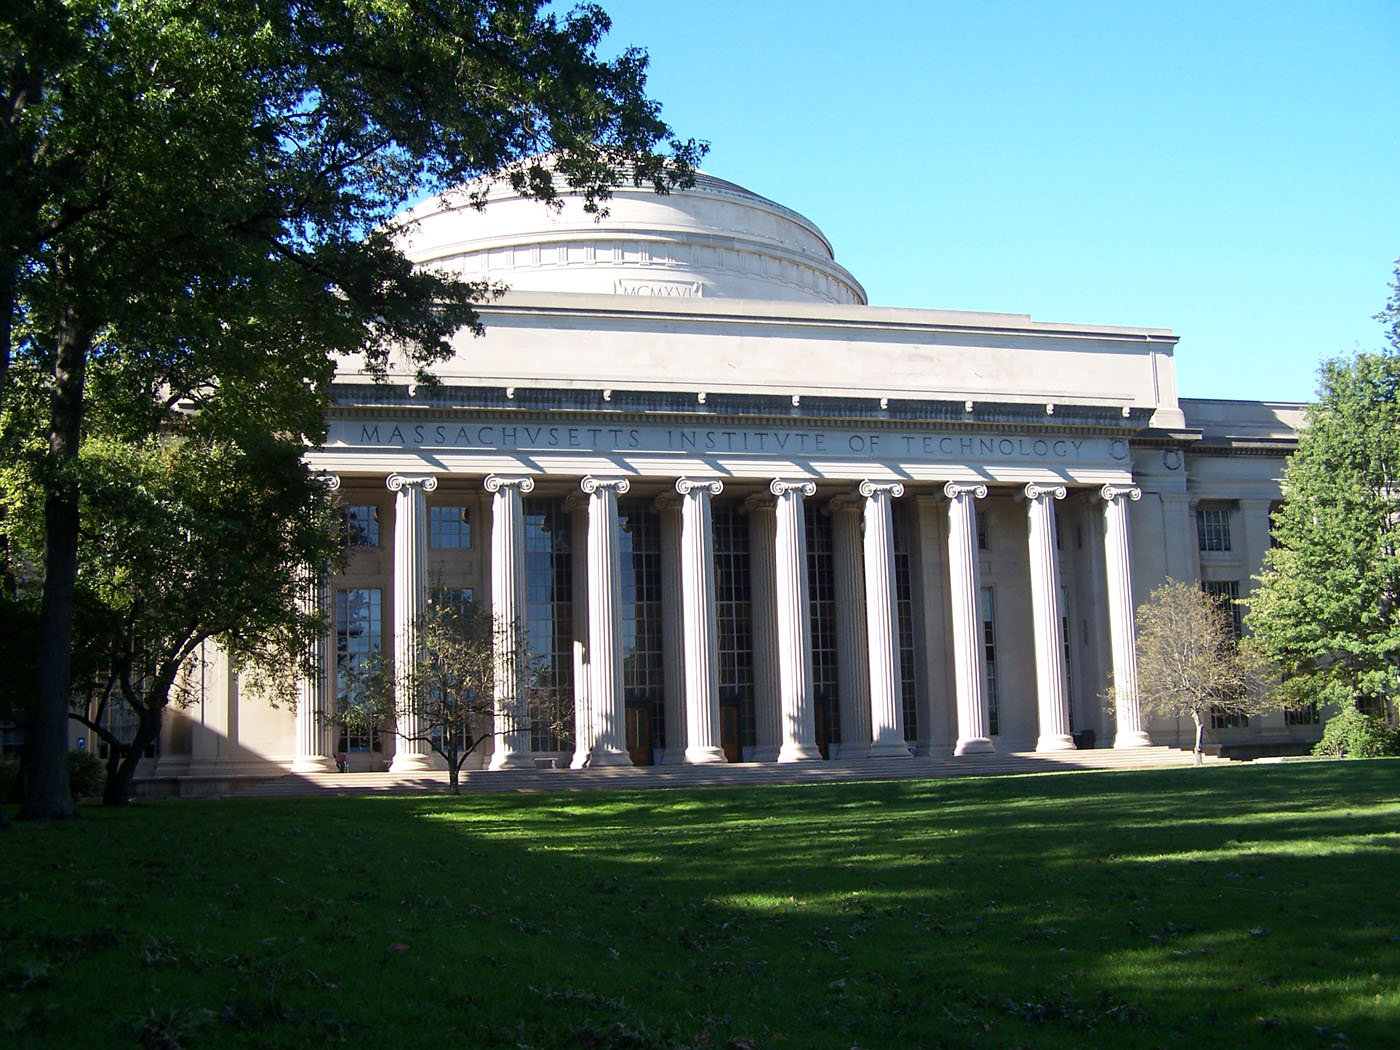 Picture of HOORAY! MIT!